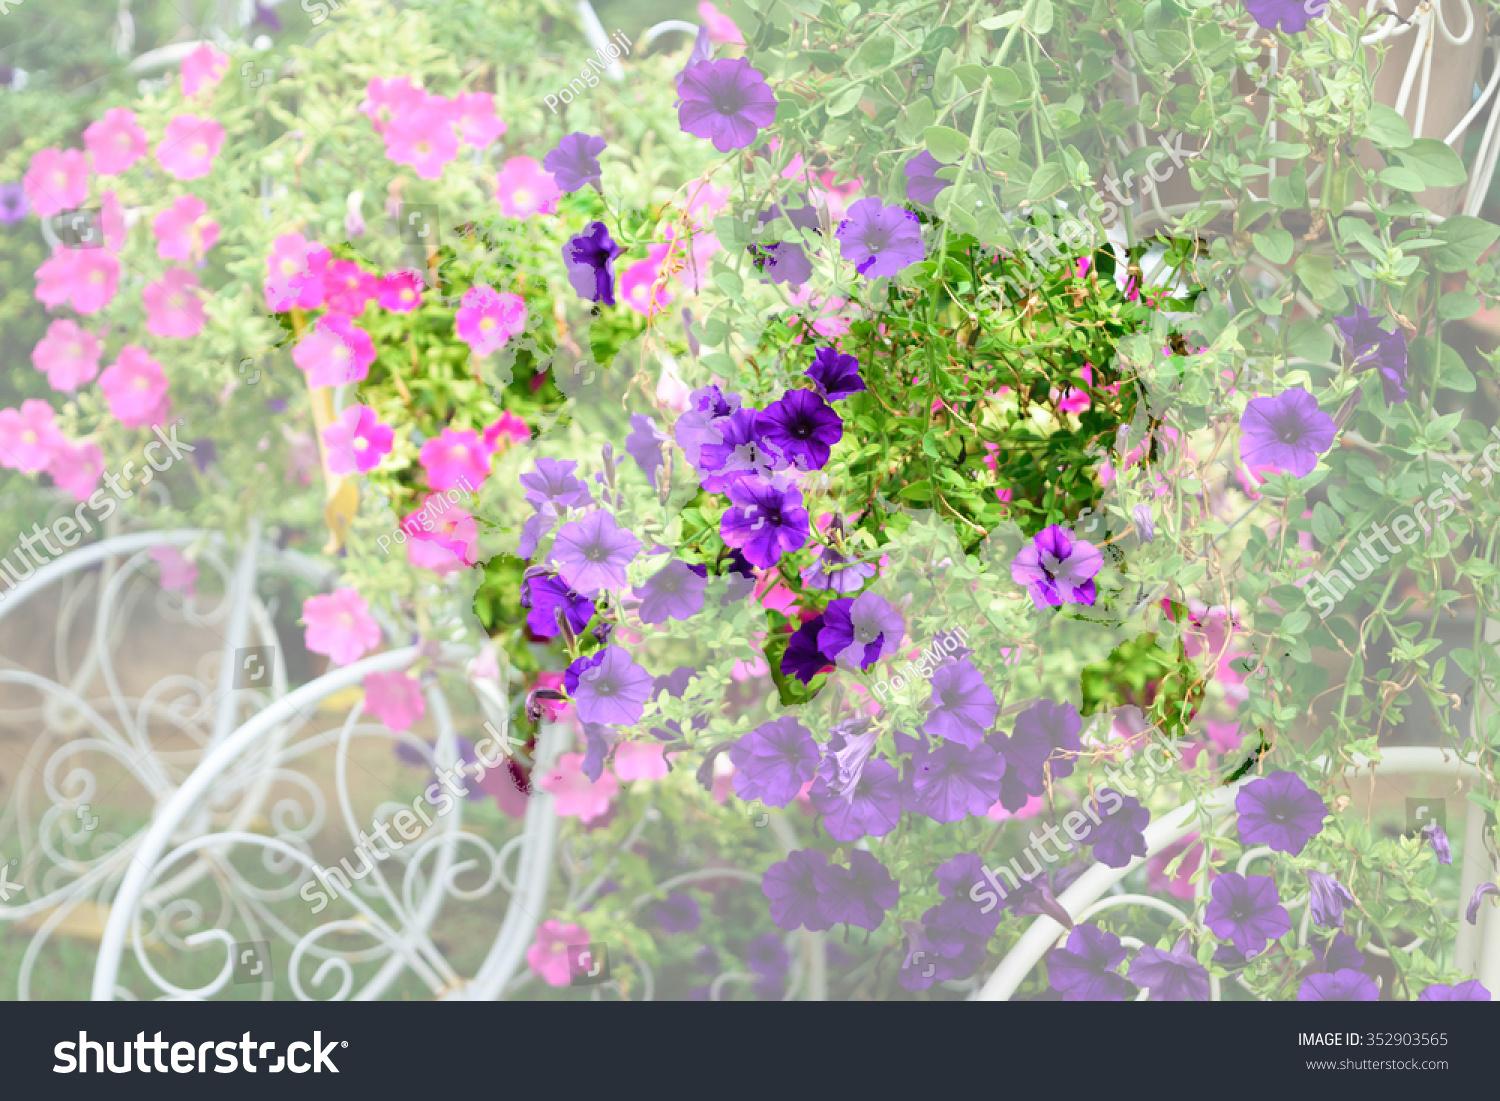 Beautiful flower naturally beautiful flowers garden stock photo beautiful flower naturally beautiful flowers in the garden with world map outline elements of izmirmasajfo